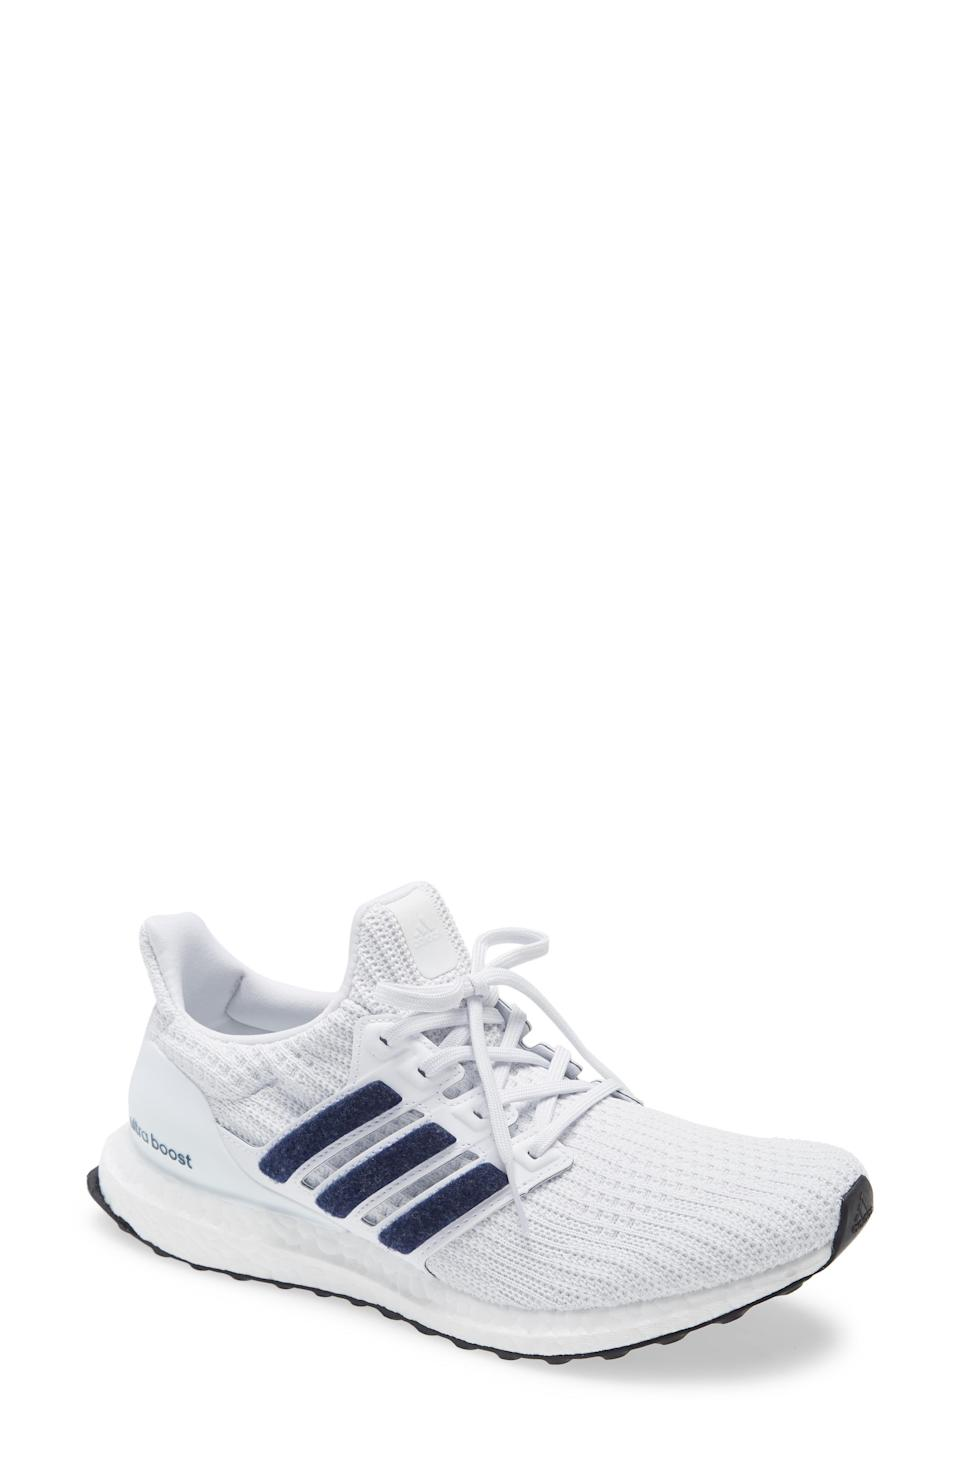 """<p><strong>ADIDAS</strong></p><p>nordstrom.com</p><p><a href=""""https://go.redirectingat.com?id=74968X1596630&url=https%3A%2F%2Fwww.nordstrom.com%2Fs%2Fadidas-ultraboost-dna-running-shoe-men%2F5743499&sref=https%3A%2F%2Fwww.menshealth.com%2Fstyle%2Fg37081969%2Fnordstroms-anniversary-sale-best-sneakers%2F"""" rel=""""nofollow noopener"""" target=""""_blank"""" data-ylk=""""slk:BUY IT HERE"""" class=""""link rapid-noclick-resp"""">BUY IT HERE</a></p><p><del>$180<br></del><strong>$119.90</strong></p><p>Everyone loves the Adidas' UltraBoost sneakers for their special, energy-responsive Boost technology. And thanks to Nordstrom's Anniversary Sale, you can score 35 percent off the asking price.</p>"""